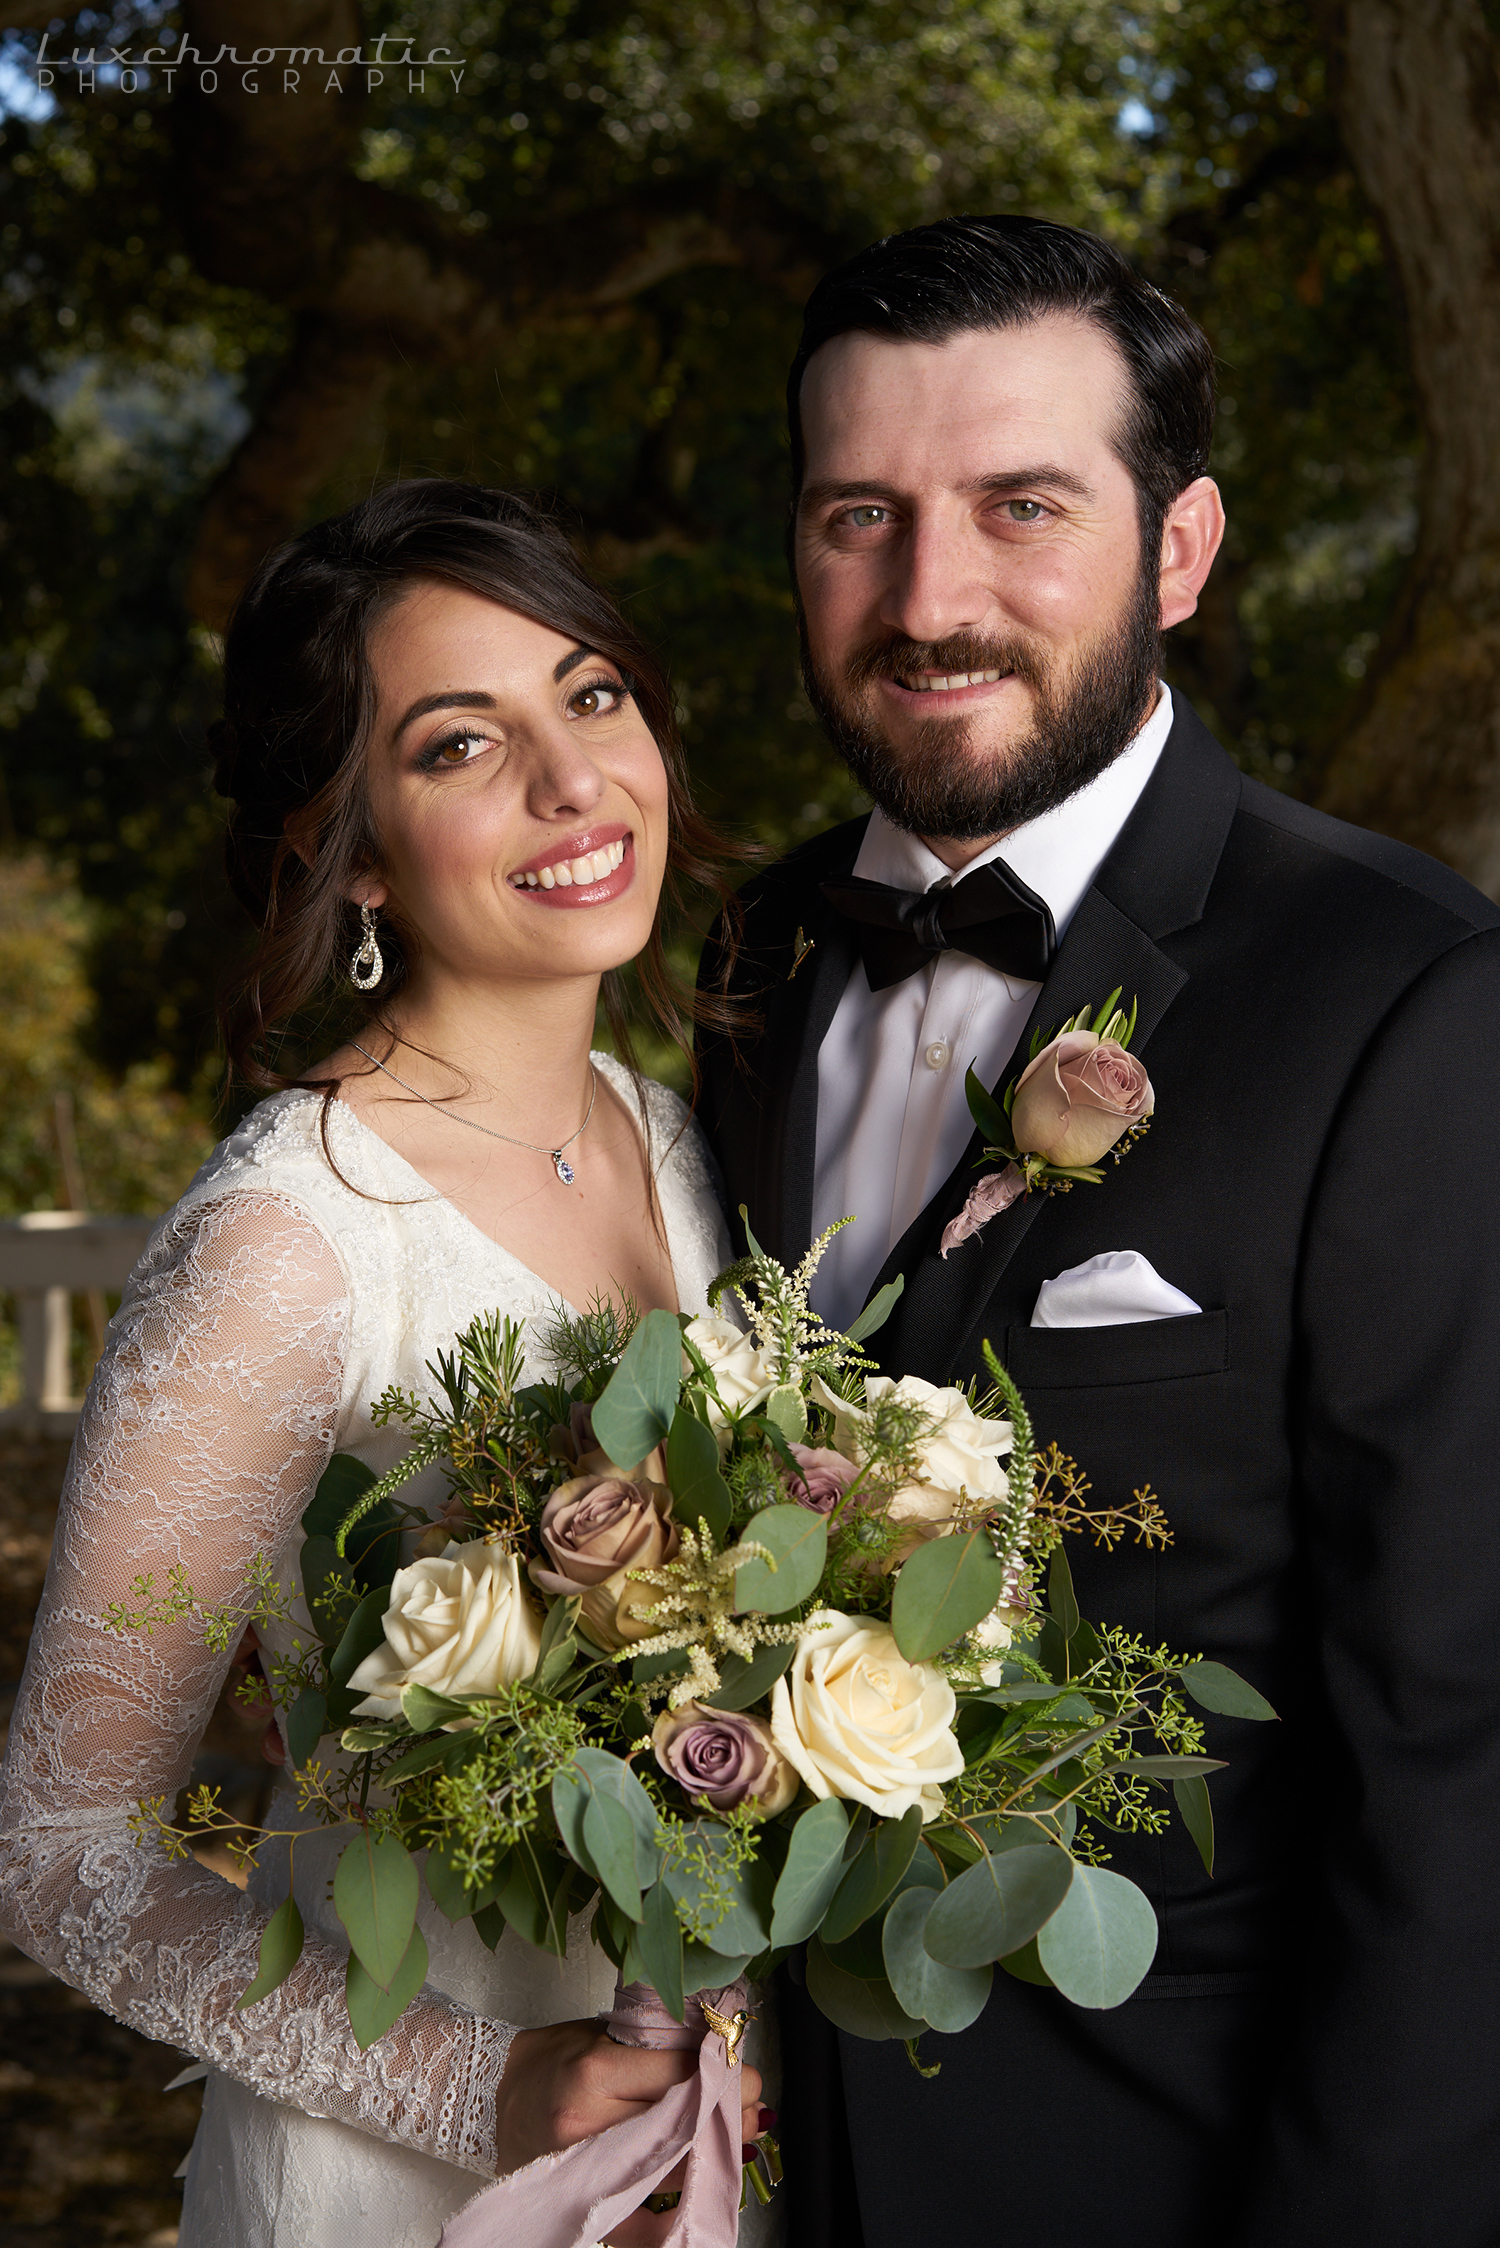 070817_Steph_Sil-San-Francisco-Bay-Area-Carmel-Valley-Monterey-Bay-California-Wedding-Los-Laureles-Lodge-Bride-Gown-Dress-Groom-Engaged-Knot-Bridesmaids-Luxchromatic-Portrait-Sony-Alpha-a7Rii-Interfit-Profoto-Best-Photographer-Photography-0135 copy.jpg